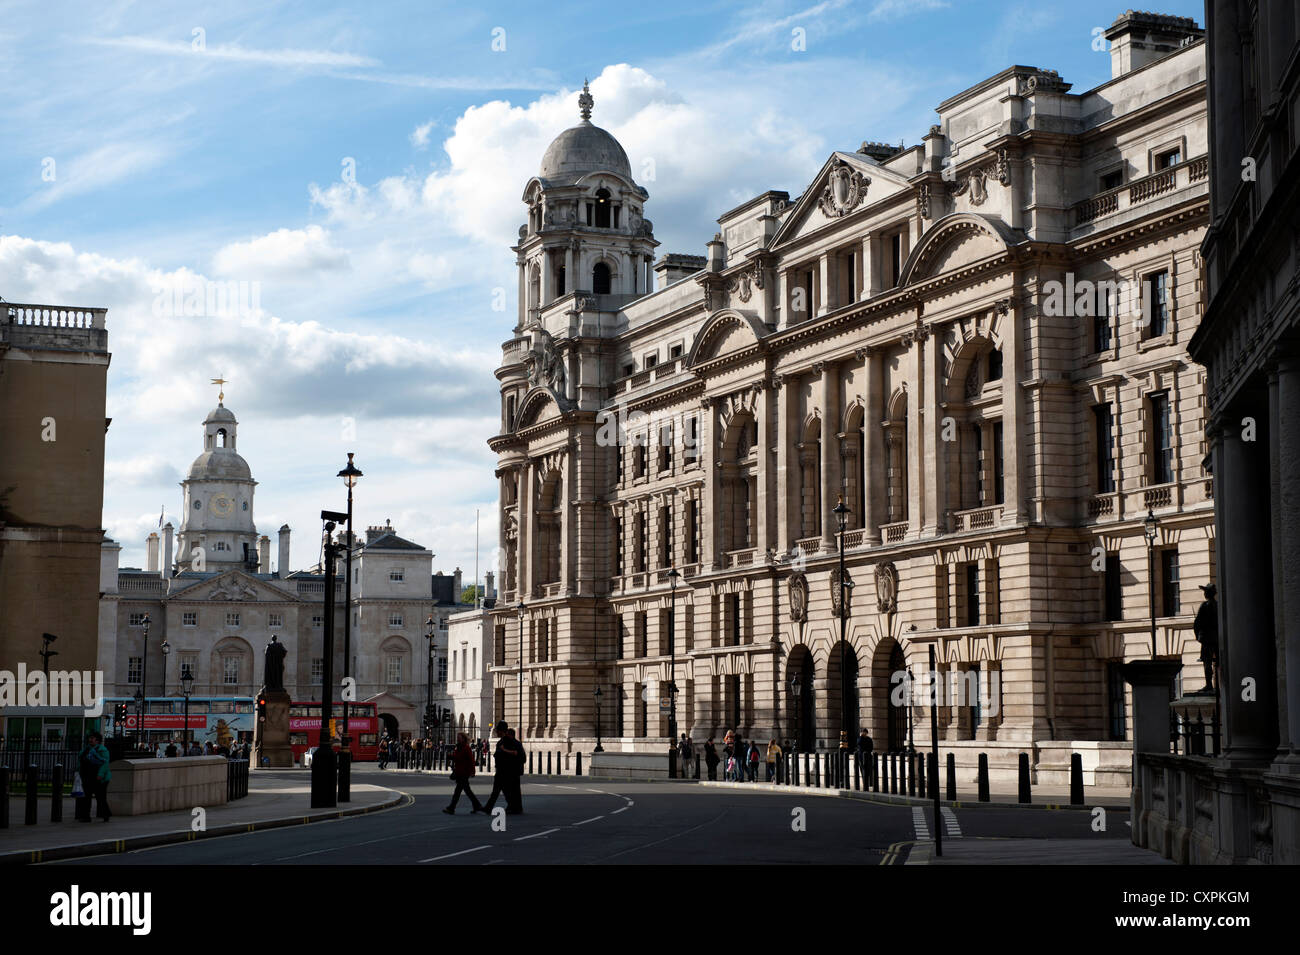 Government Buildings In Westminster London EnglandUK Thje Old War Office On The Right And Horse Guards Left